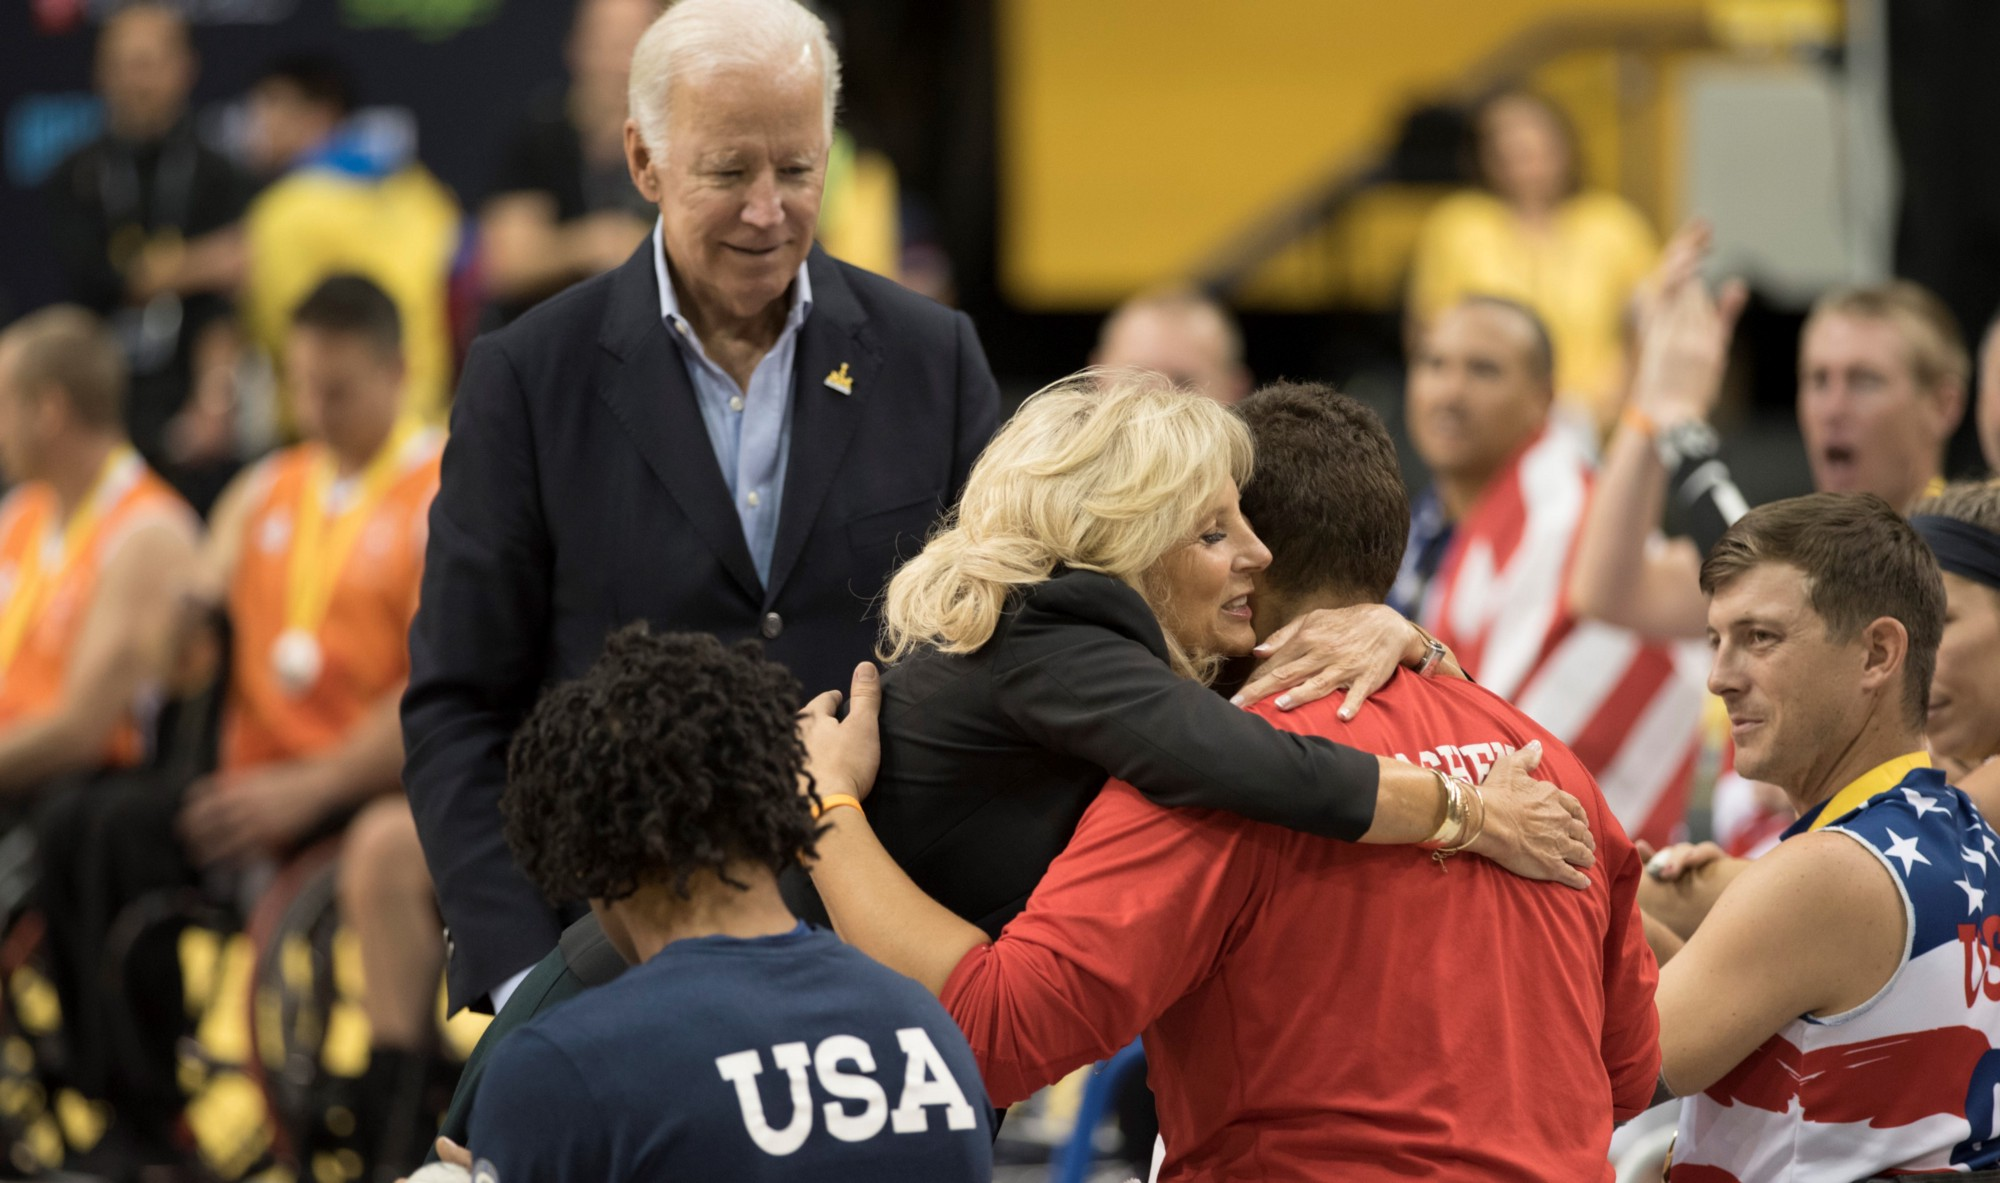 Vice President and Dr. Biden at the Invictus Games, an international sporting event for wounded, sick, or injured warriors.